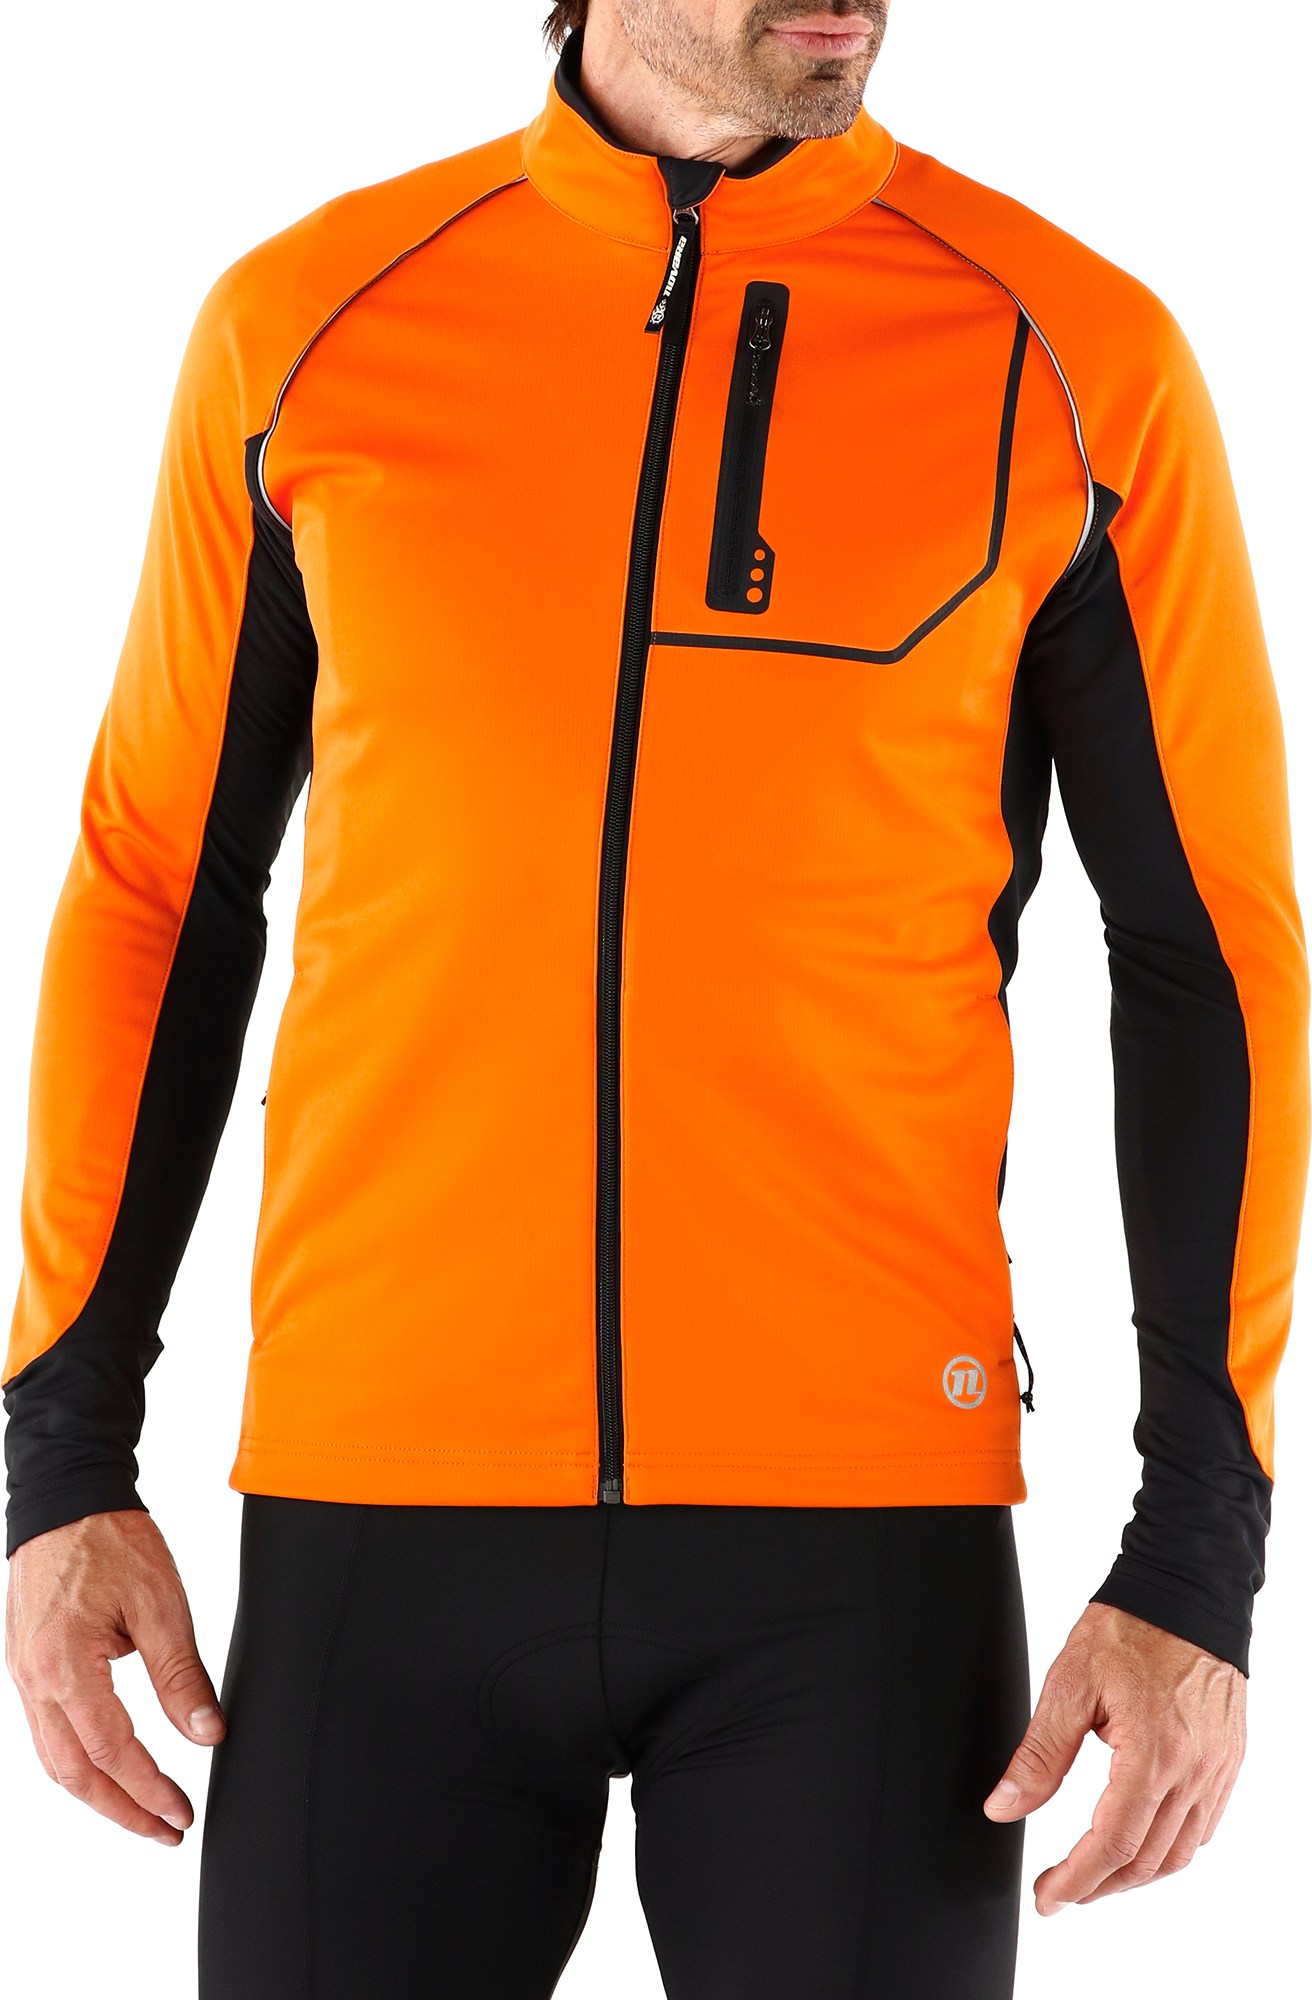 Novara Headwind Bike Jacket